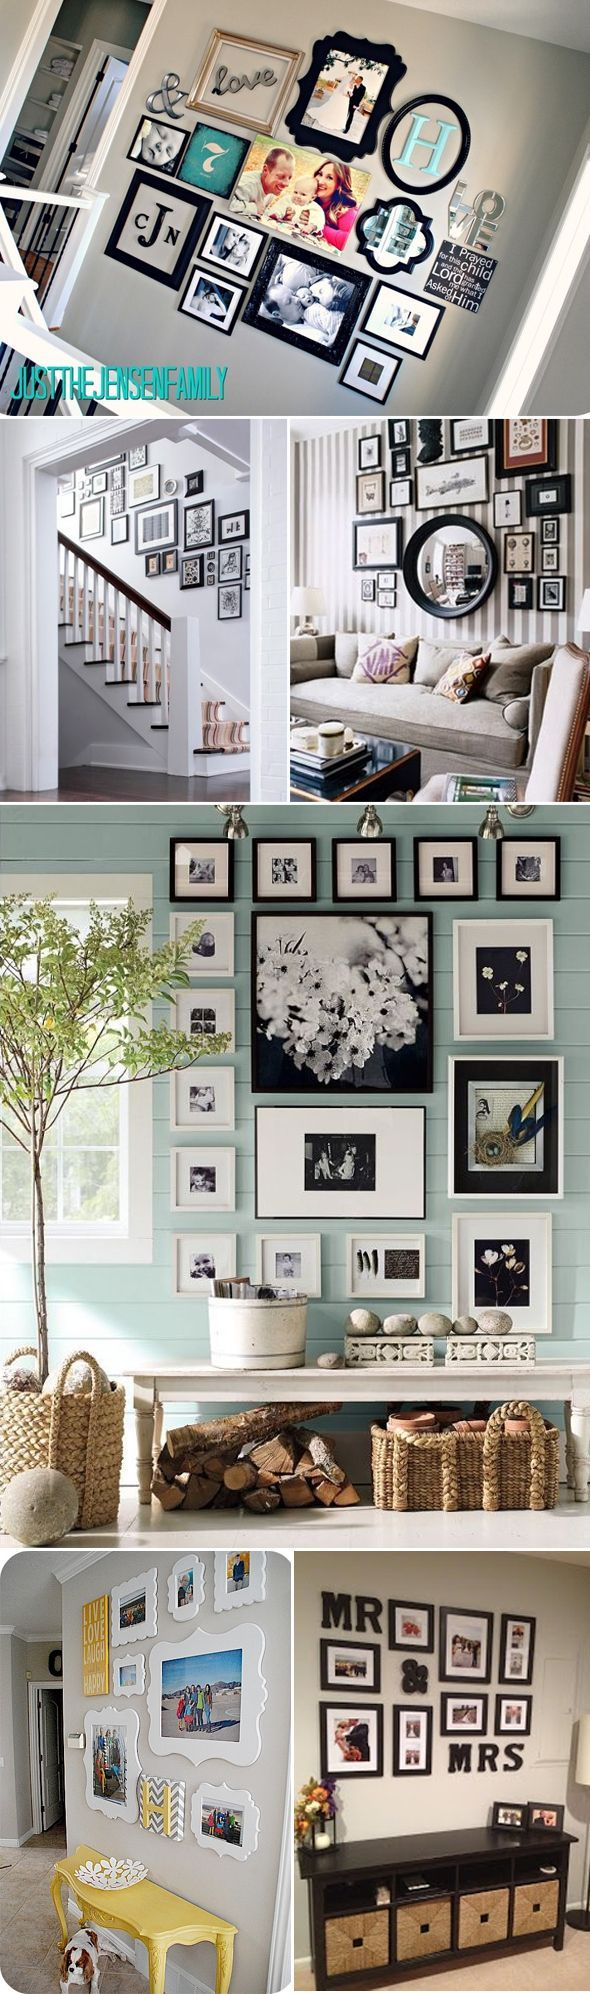 Ideias de disposio de fotos/quadros na parede Unique Ways Of Displaying  Photographs In Your